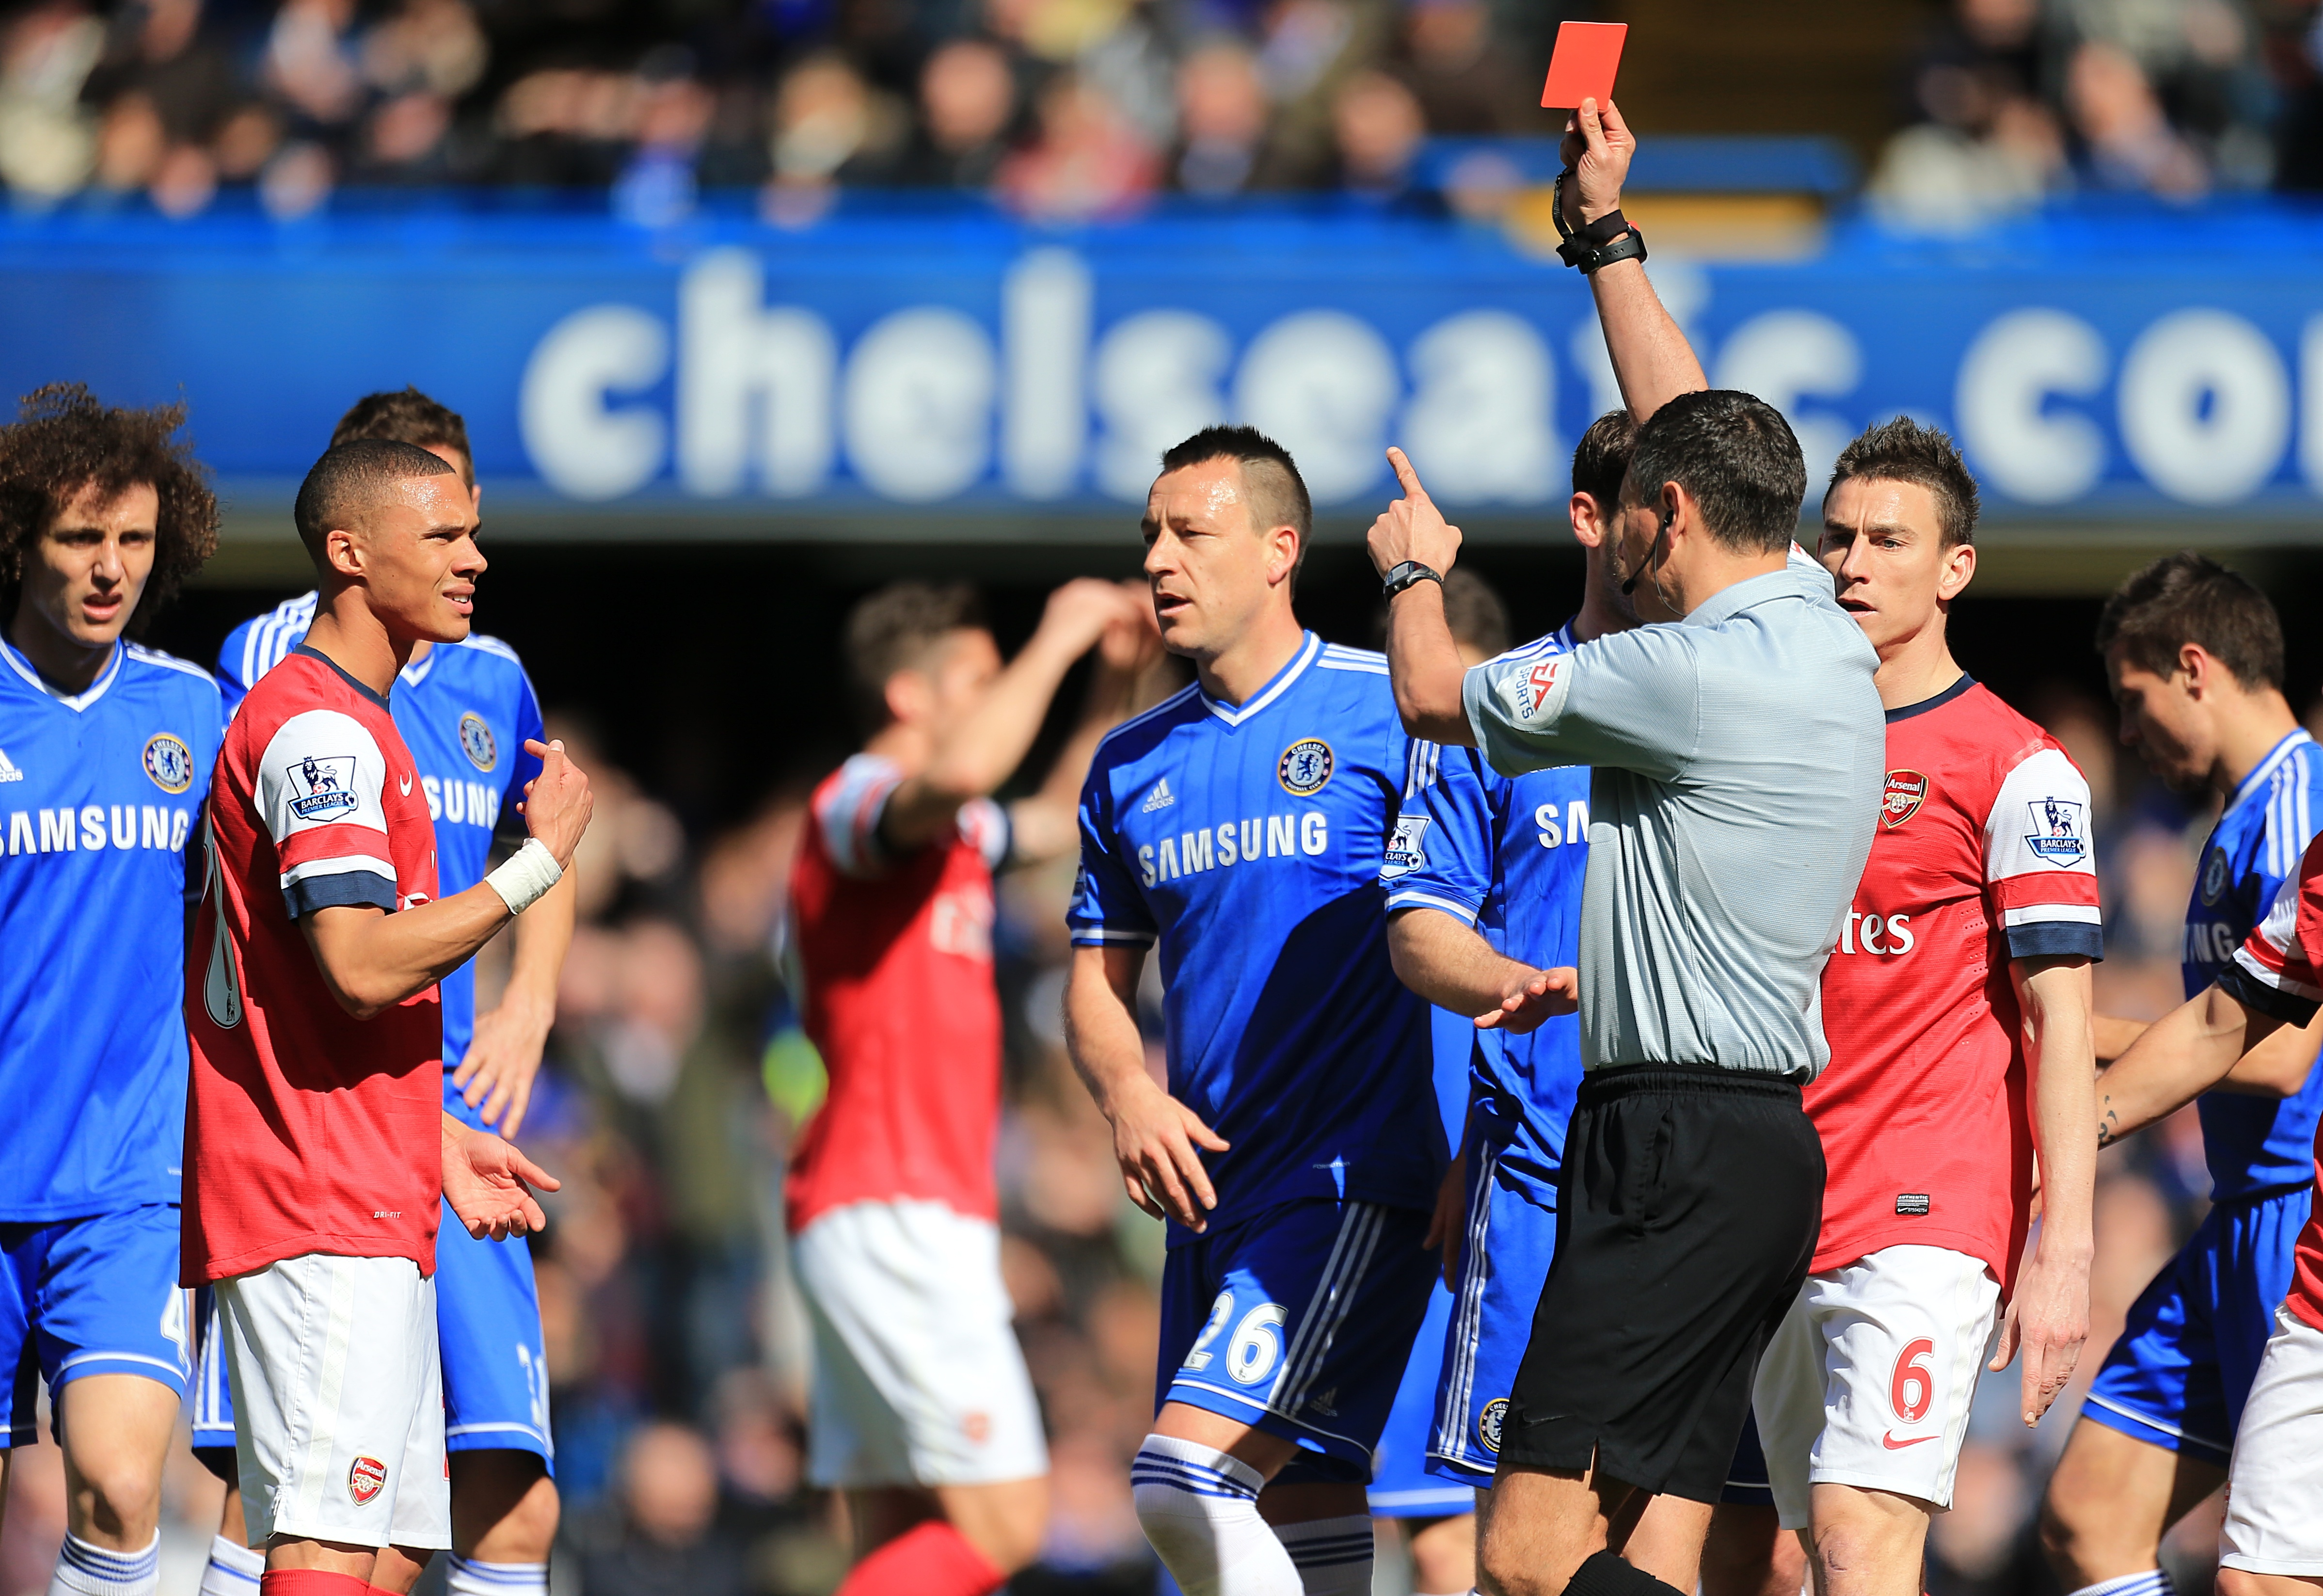 Kieran Gibbs was sent off early in the game back in 2014 - referee Andre Marriner mistaking him for Alex Oxlade-Chamberlain, who had handled on the line.